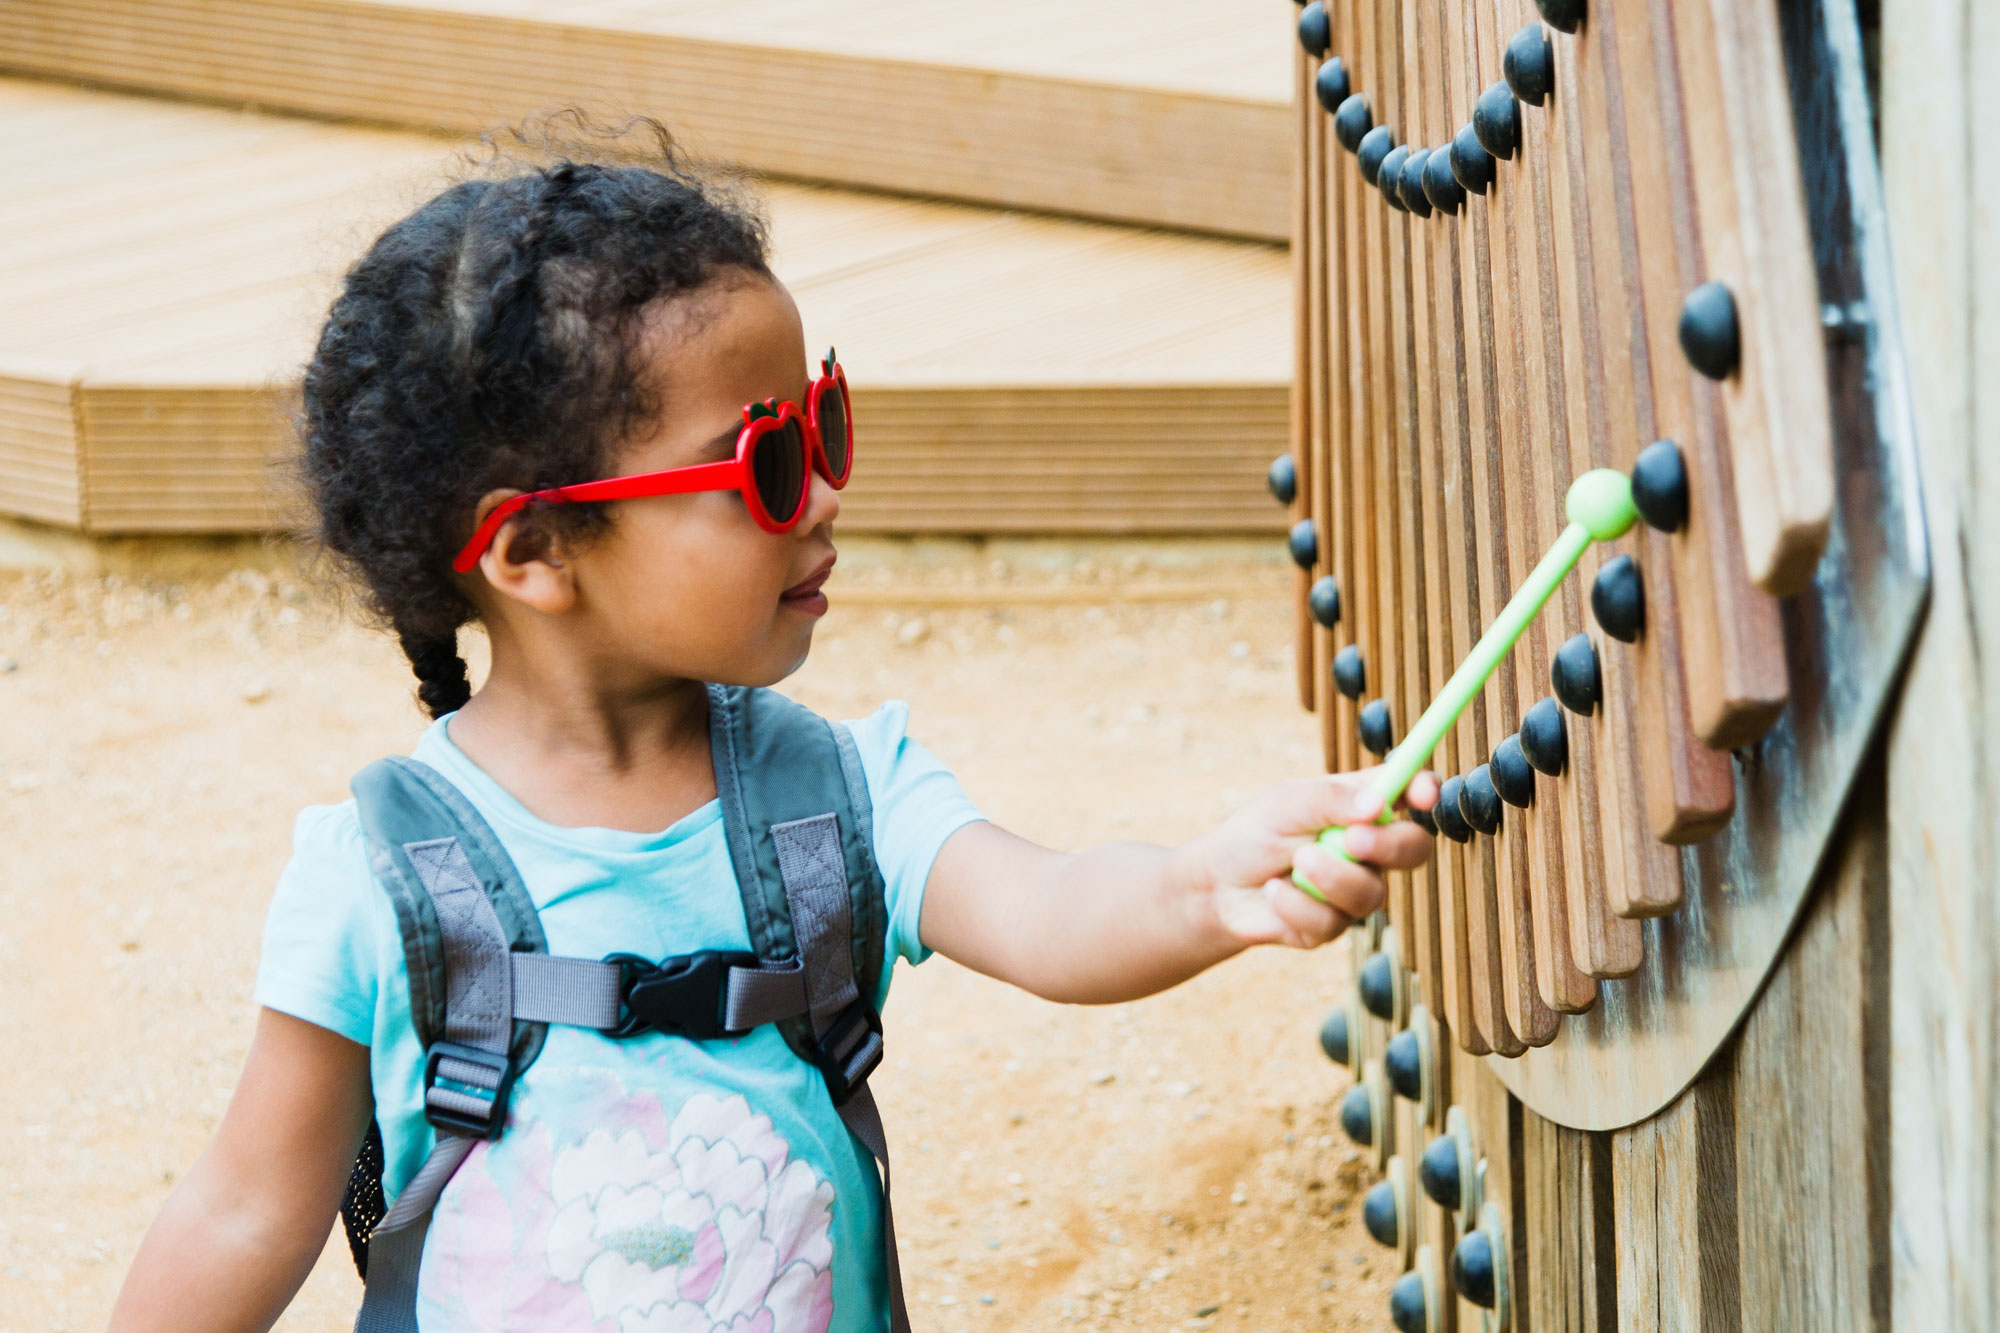 A small girl wearing red sunglasses is side on playing a large outdoor, vertical instrument made of panels of wood with a beater